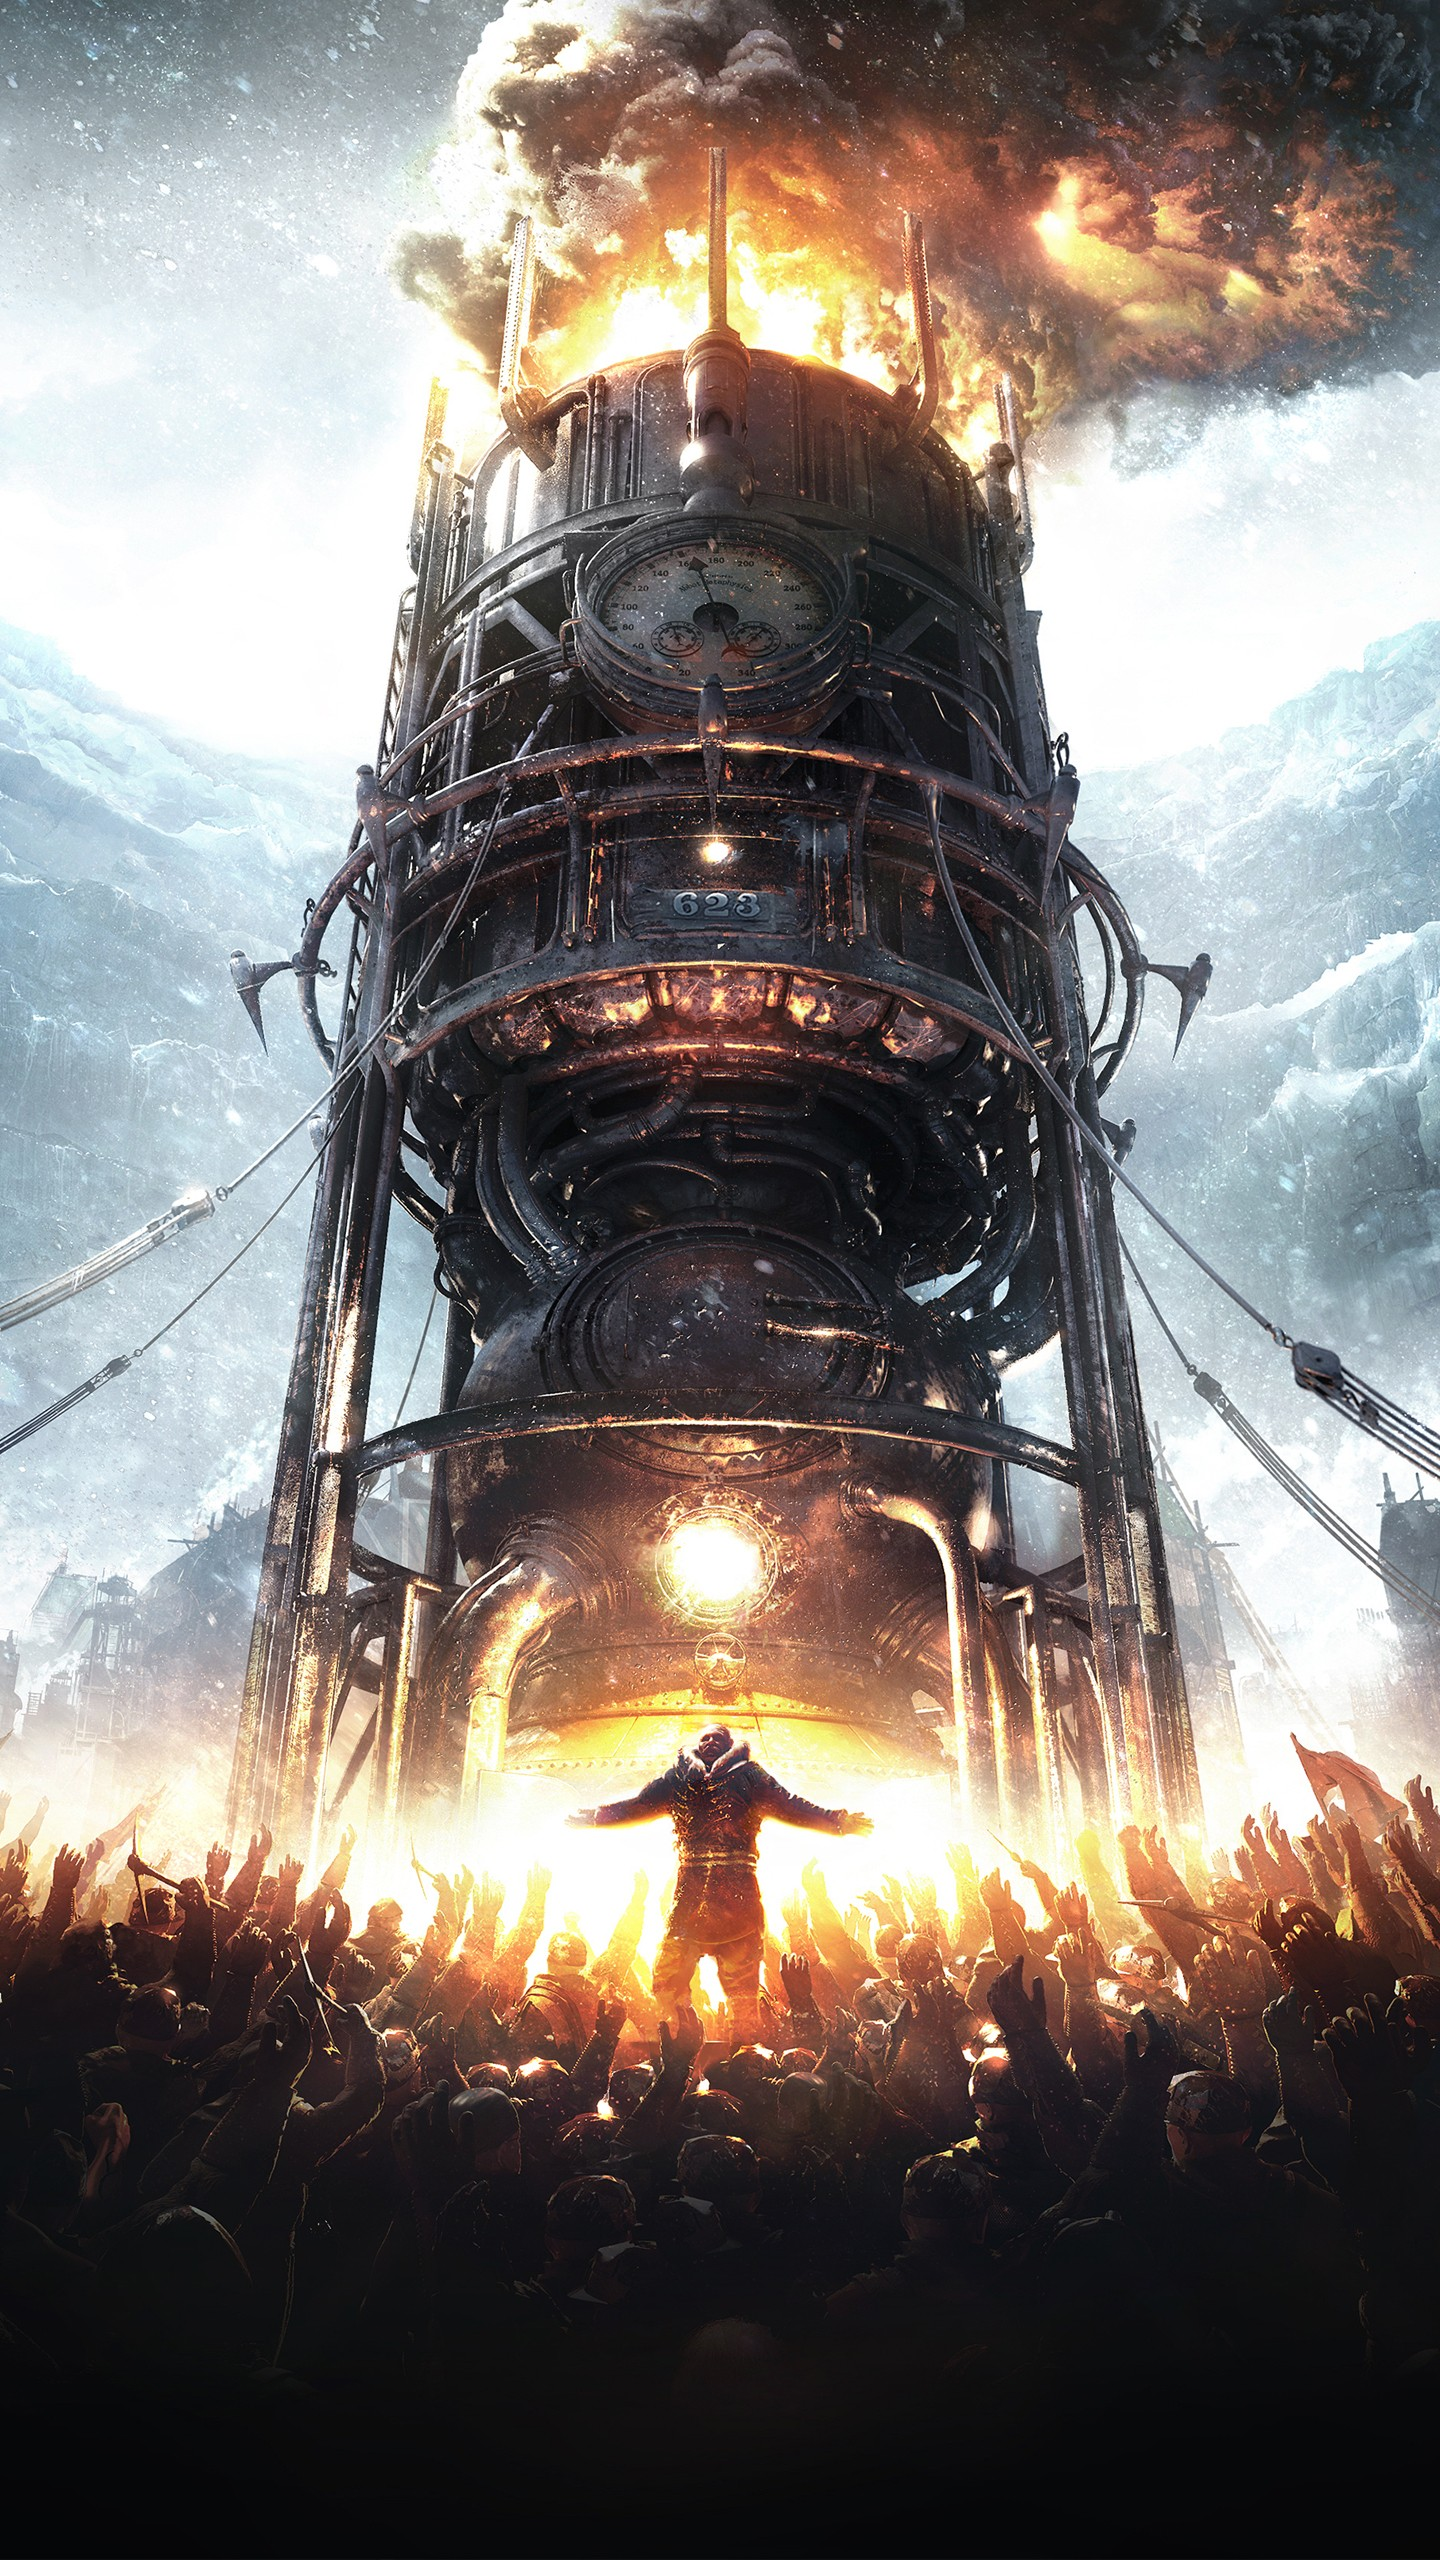 Ultra Hd Wallpapers For Iphone Frostpunk 2018 Game Wallpapers Hd Wallpapers Id 23754